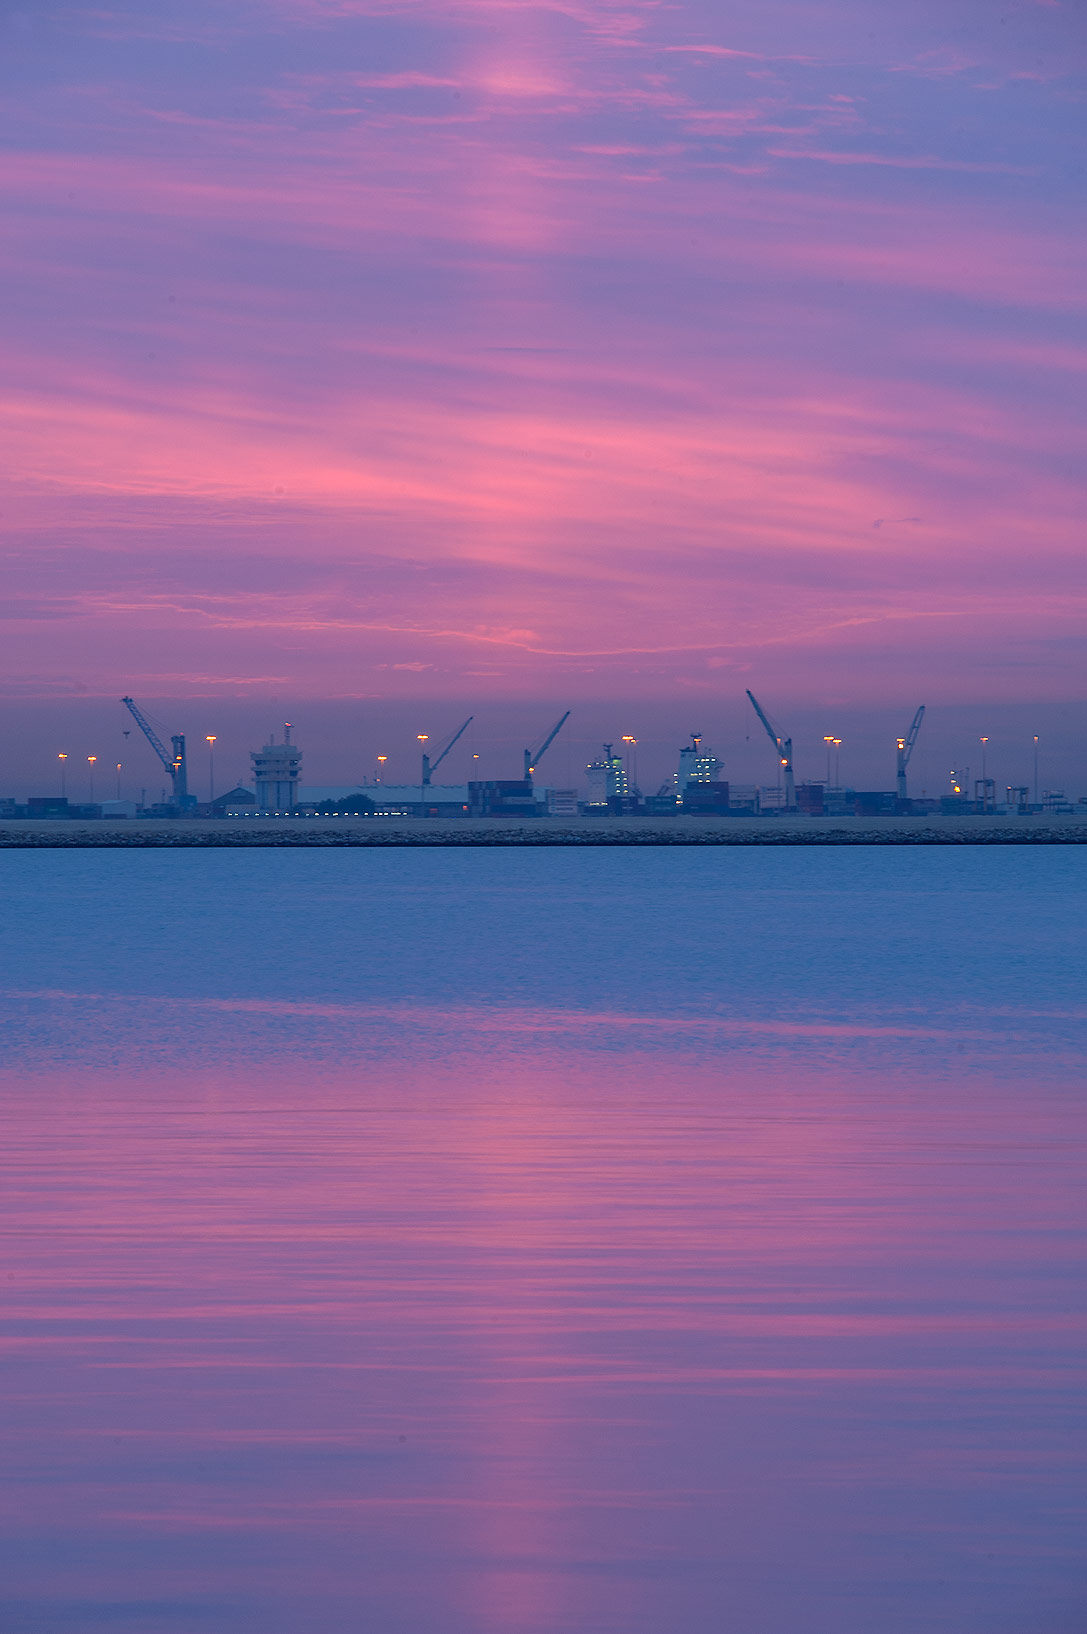 Light pillar at sunrise over Doha port from Corniche promenade. Doha, Qatar